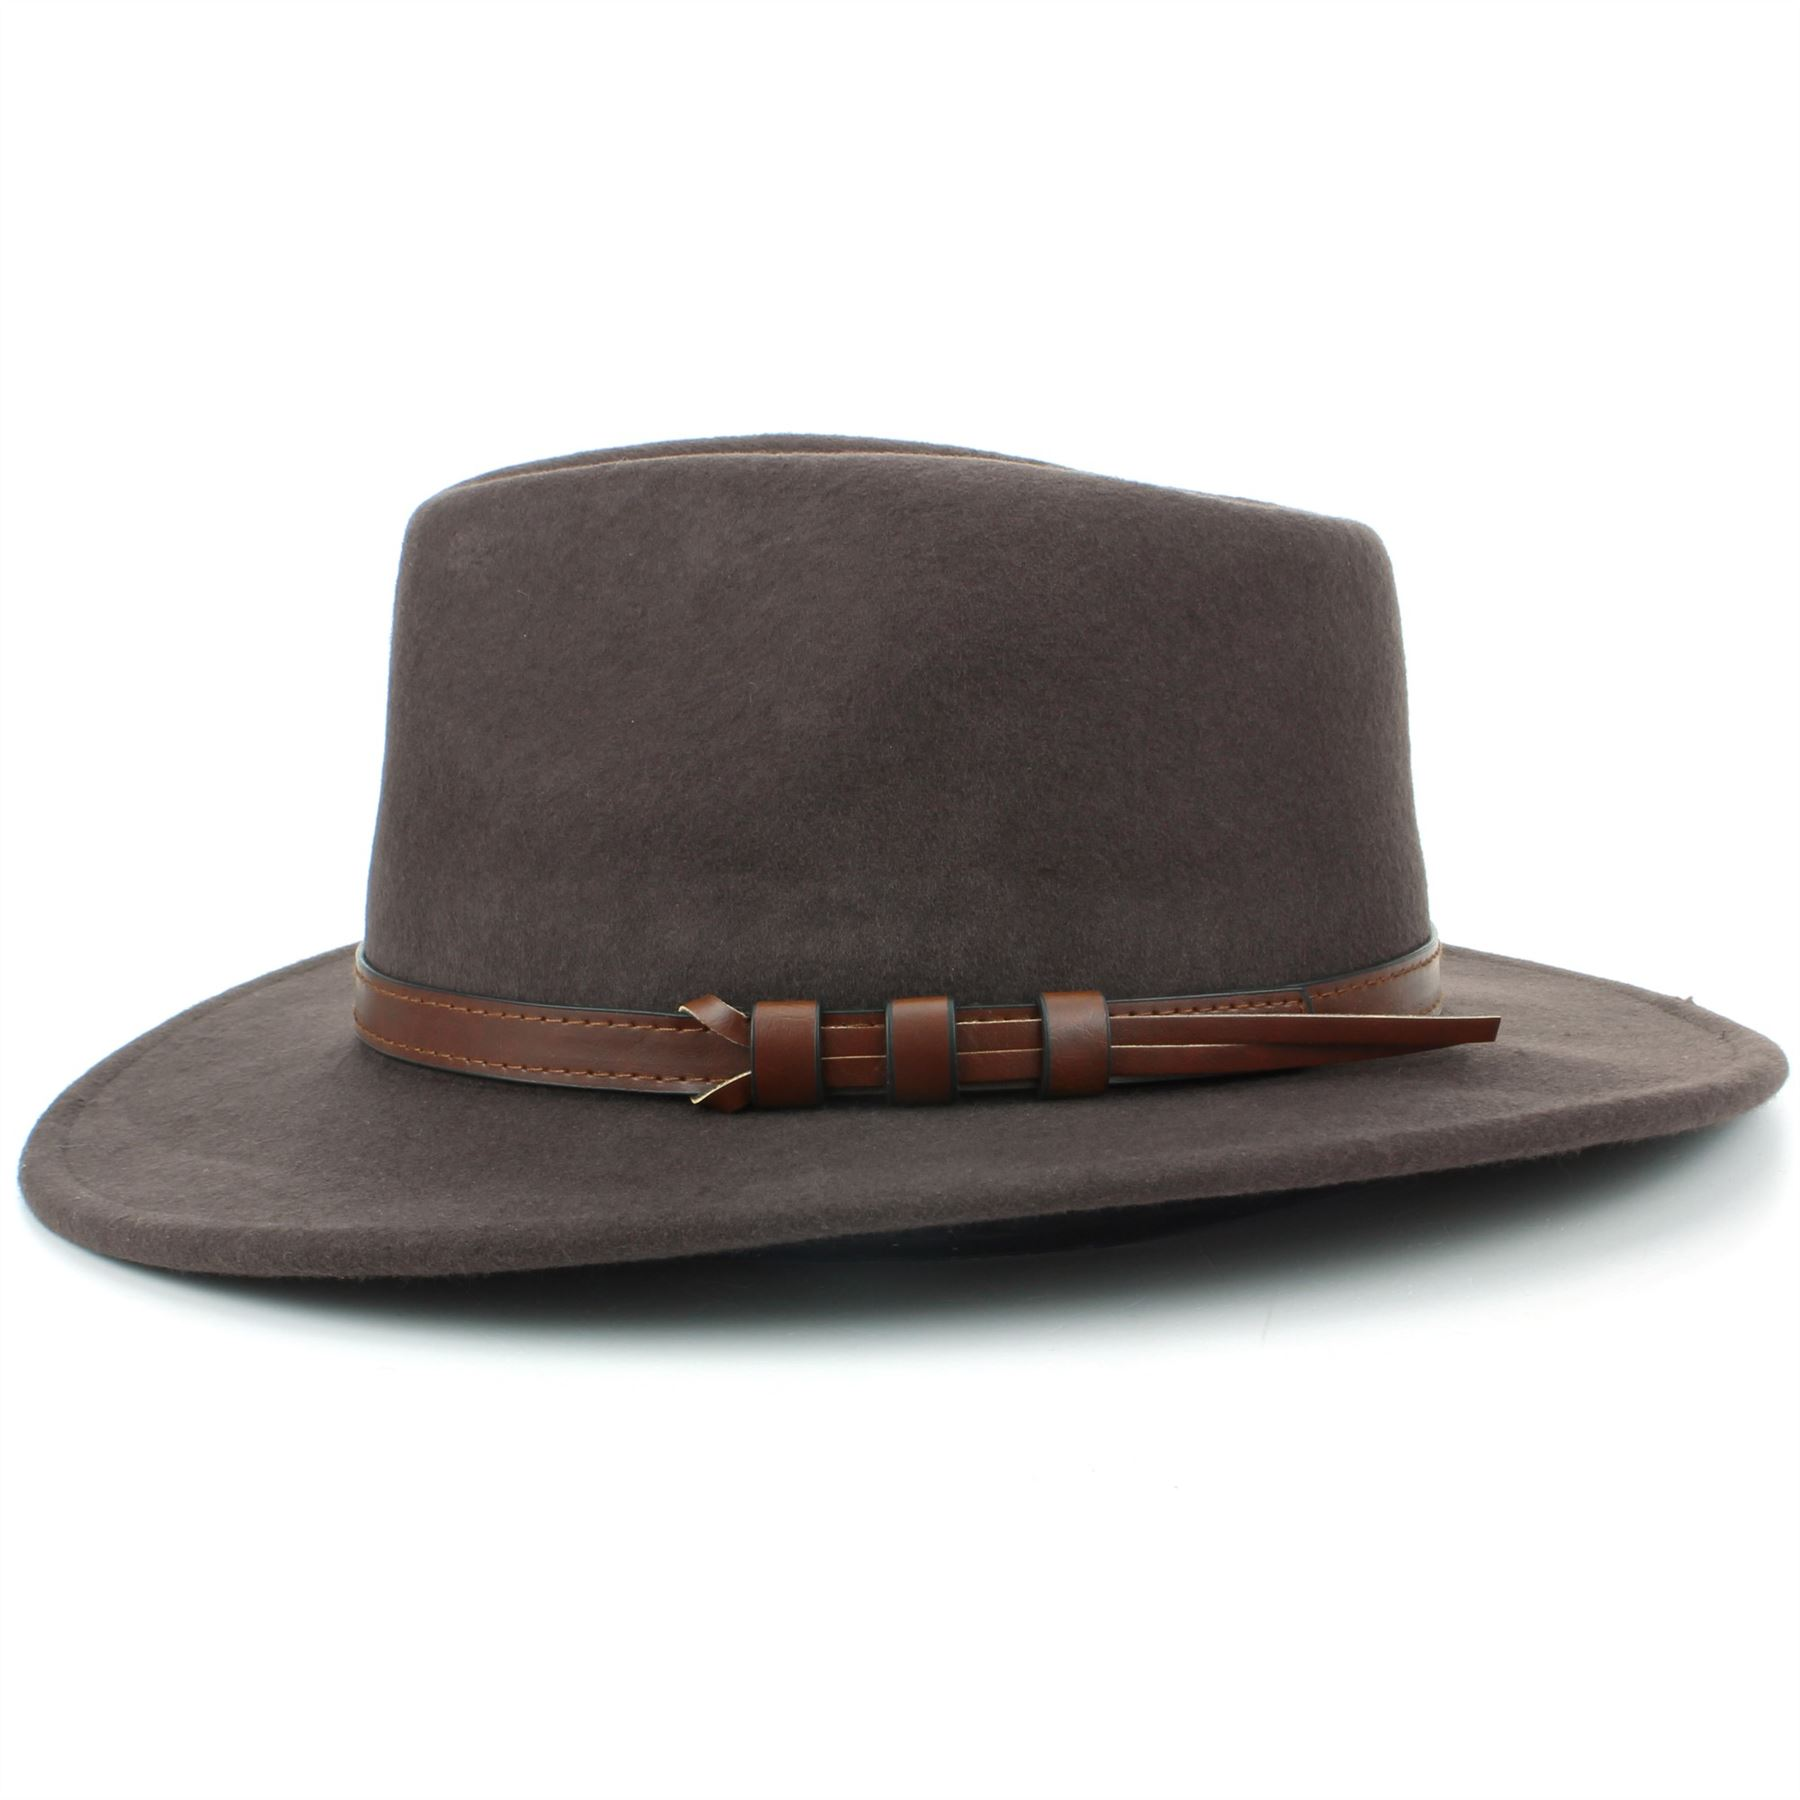 Fedora Hat Wool BLACK BROWN Hawkins Trilby Brim Mens Ladies Travel ... 0ff2647a9b1